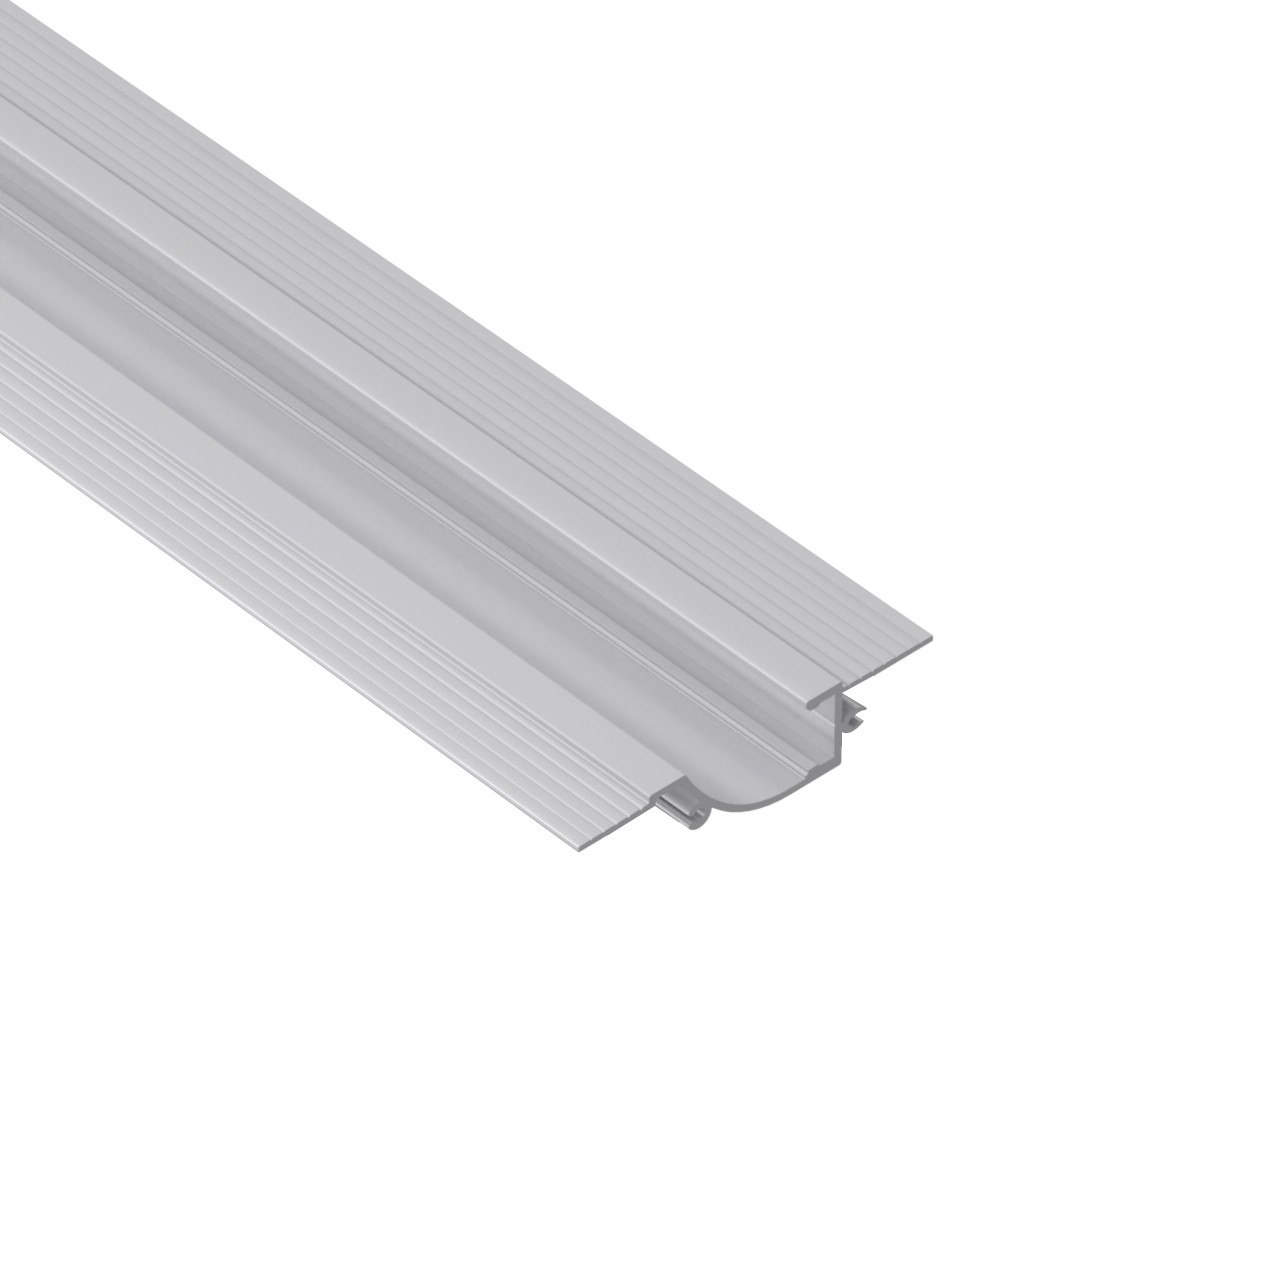 CTW1 indirecta LED Linear empotrada en el techo trimless tira ligera perfil 86.5x19.6mm